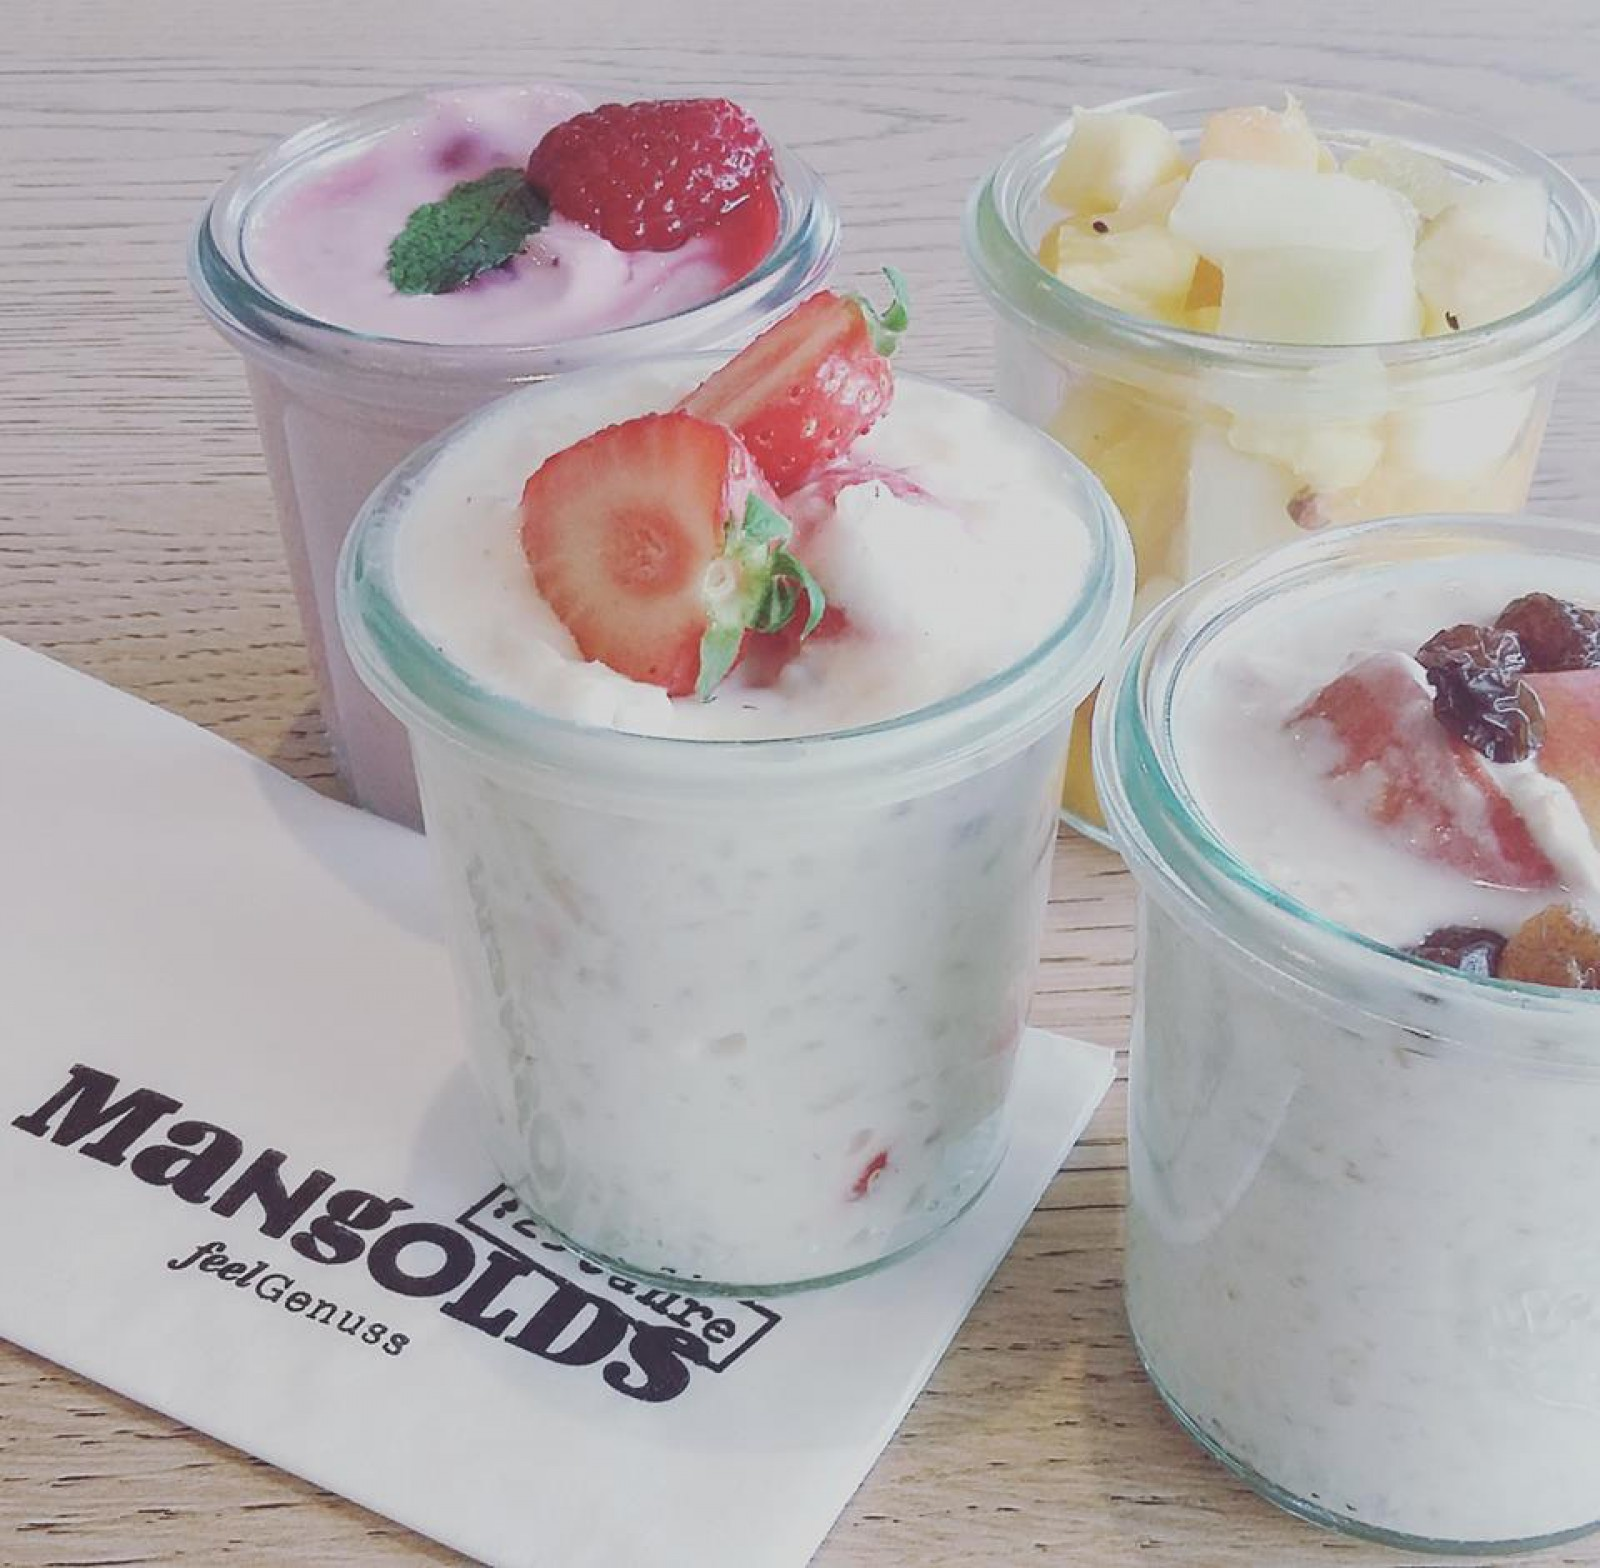 Mangolds Restaurant Catering Gmbh In Graz